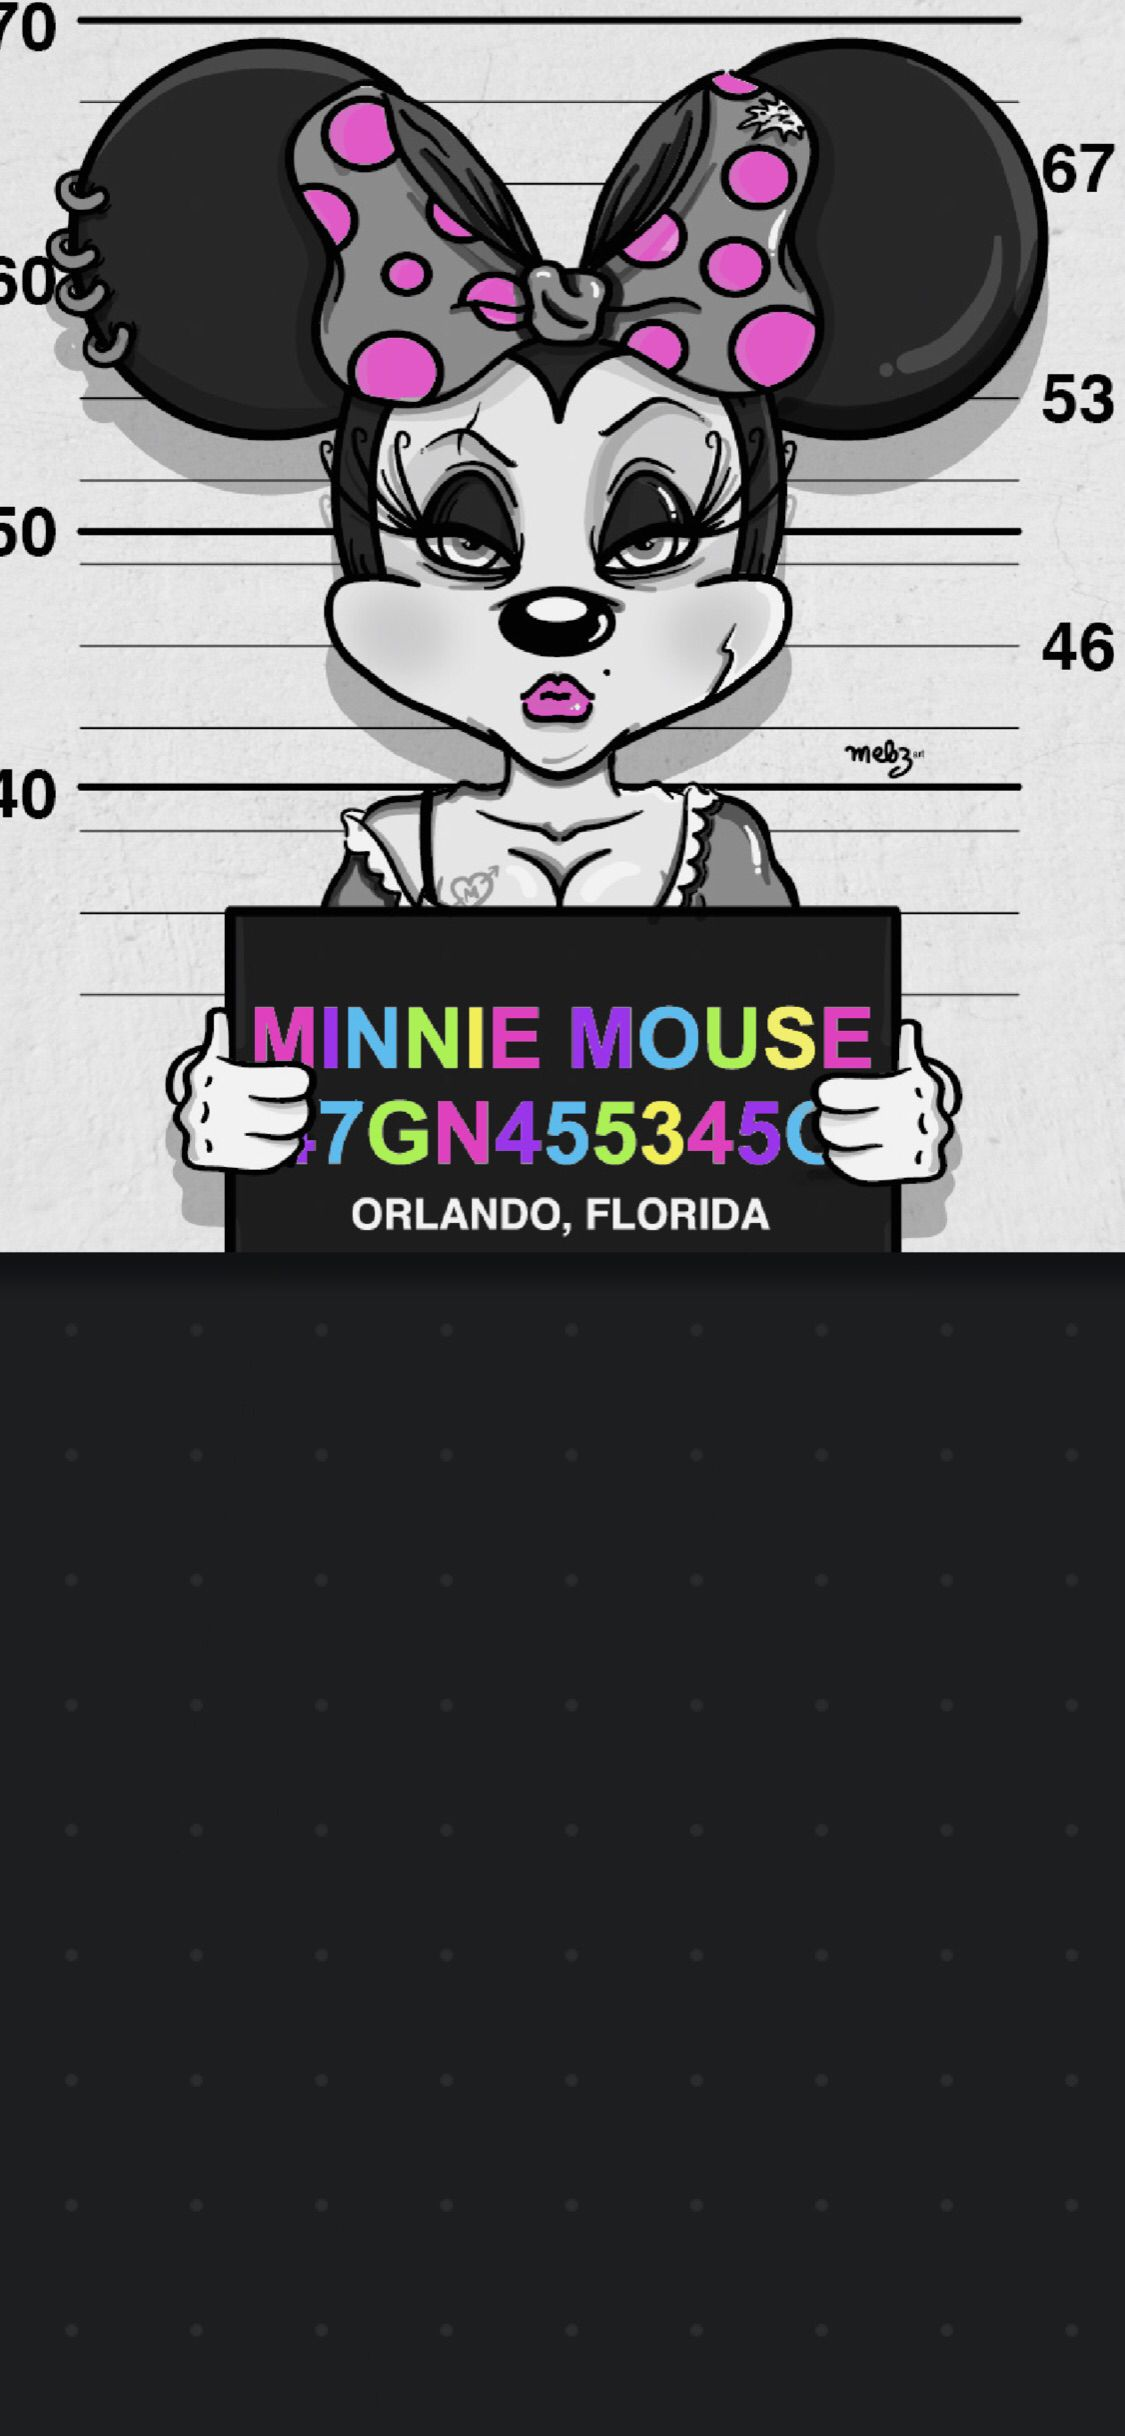 Wallpaper, background, iPhone, Android, HD, Minnie Mouse